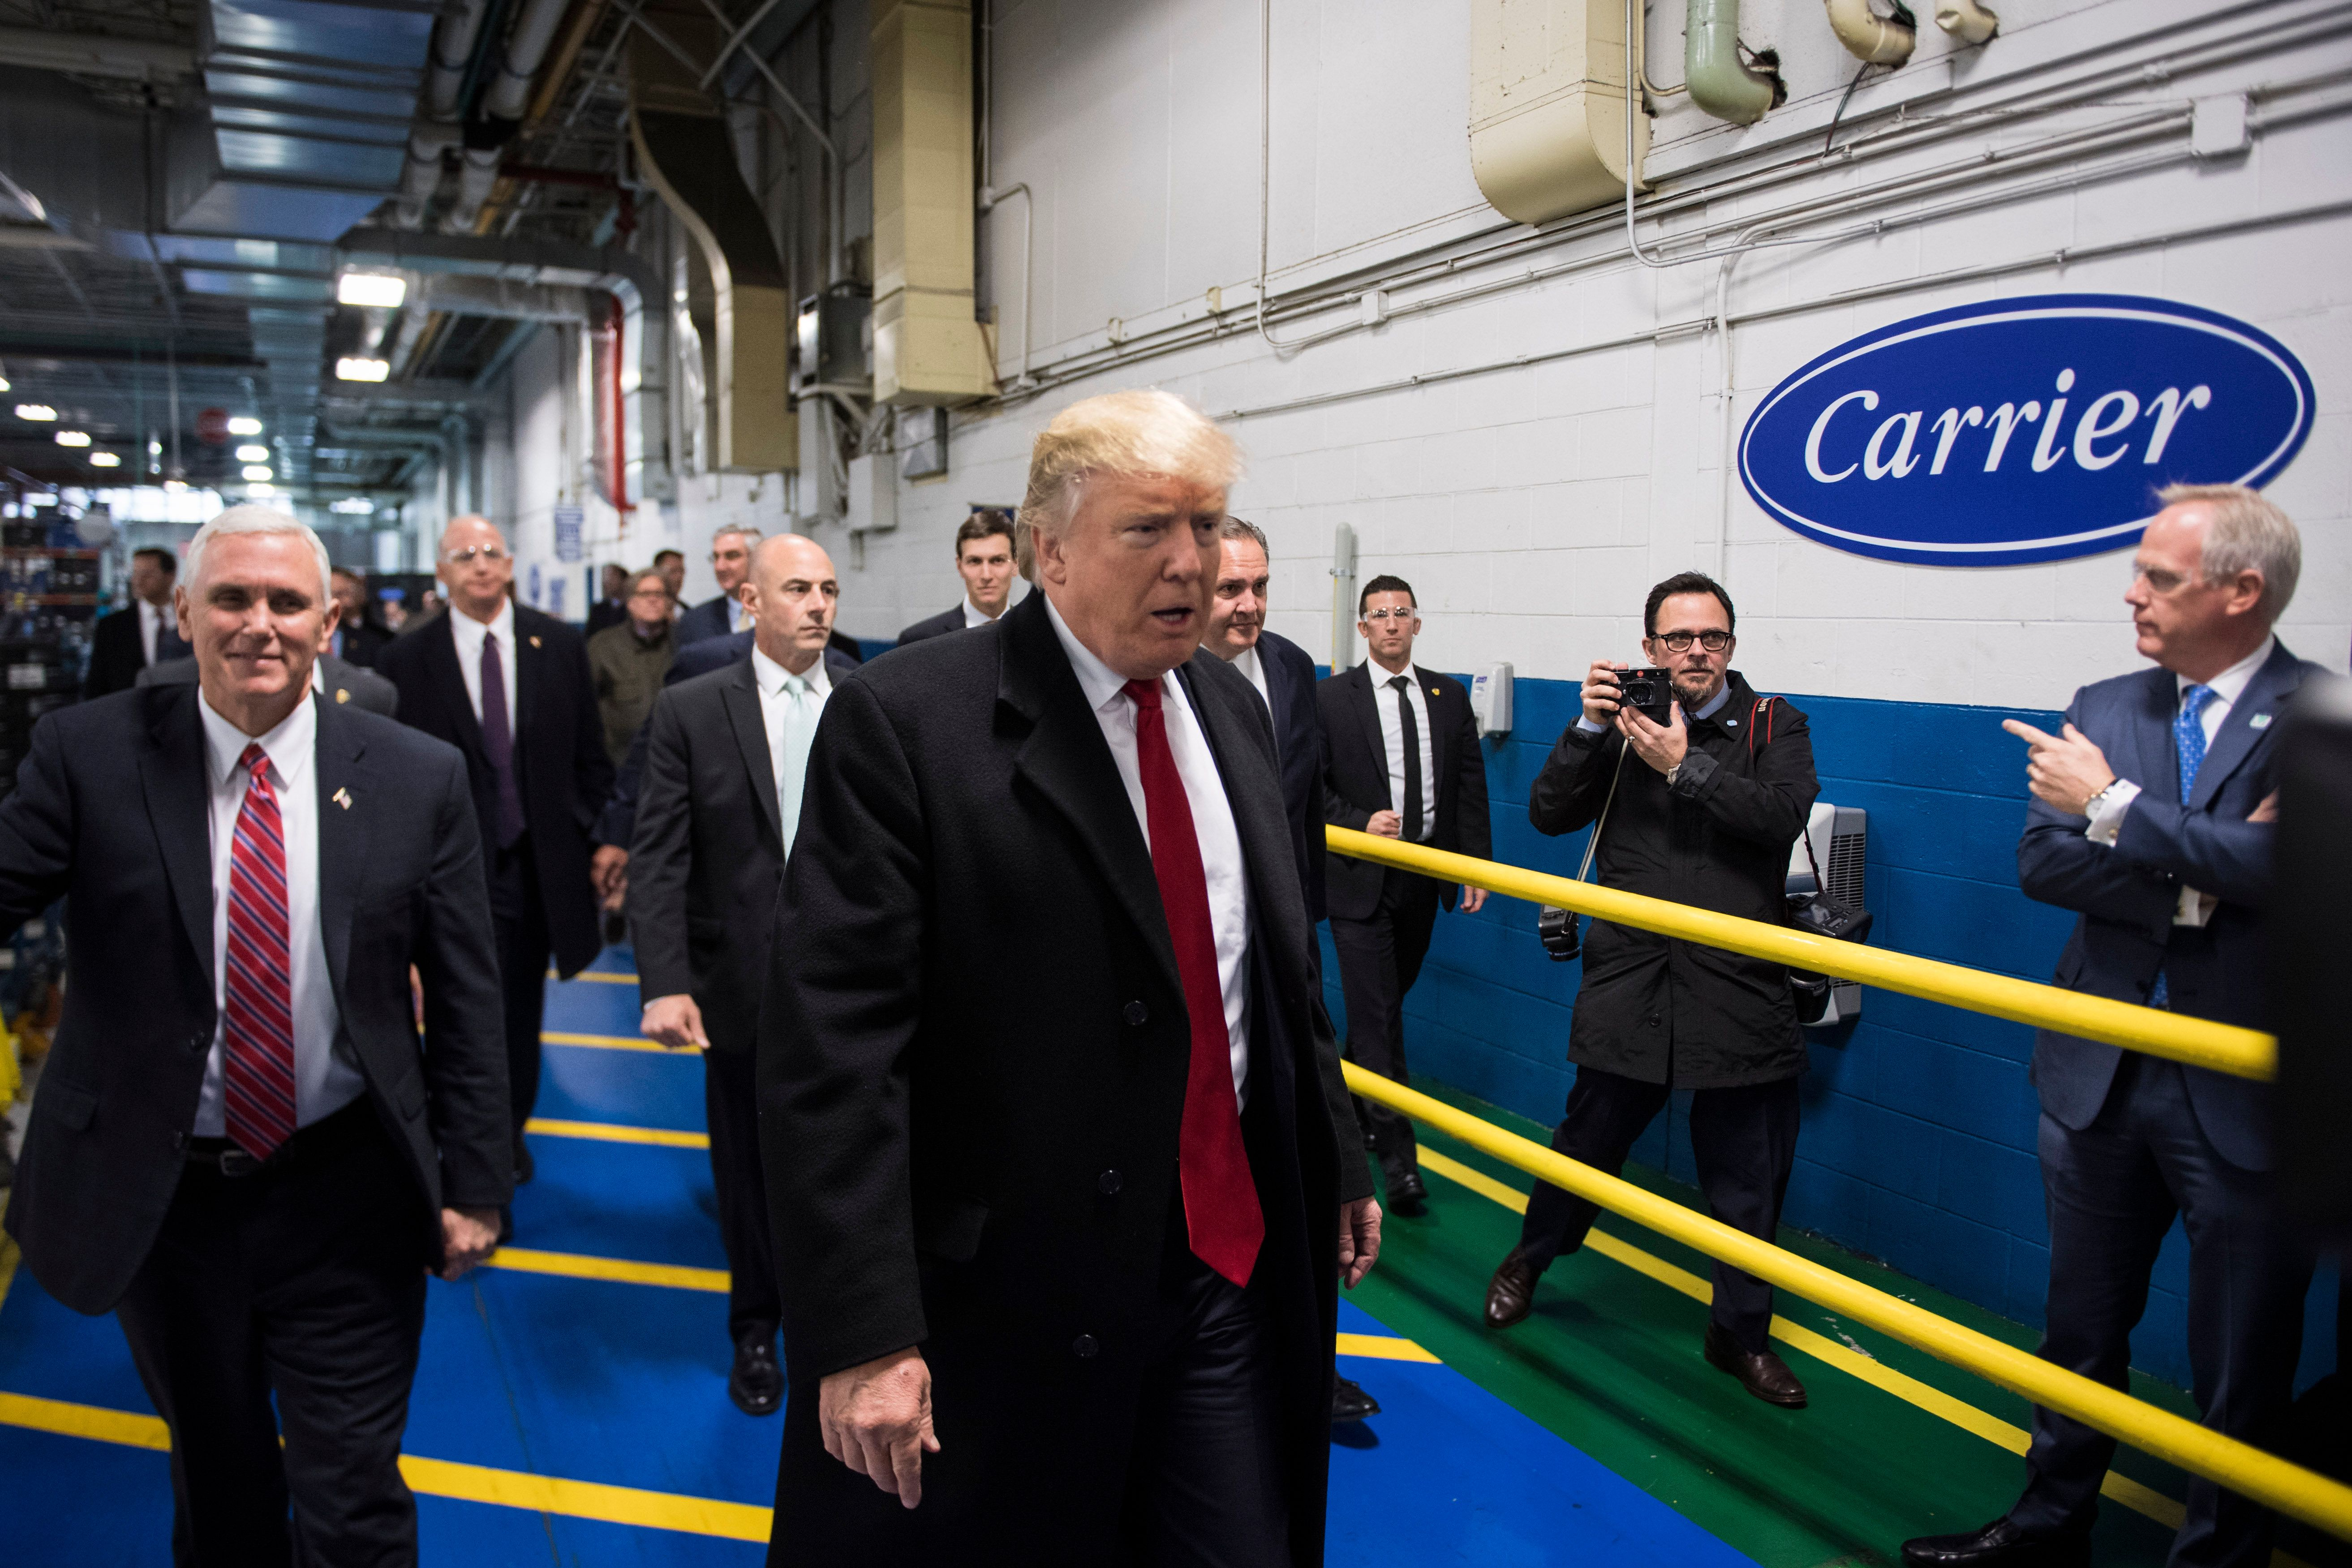 INDIANAPOLIS, IN - DECEMBER 1: President-elect Donald Trump and Vice President-elect Mike Pence take a tour of Carrier Corporation in Indianapolis, IN on Thursday, Dec. 01, 2016. (Photo by Jabin Botsford/The Washington Post via Getty Images)